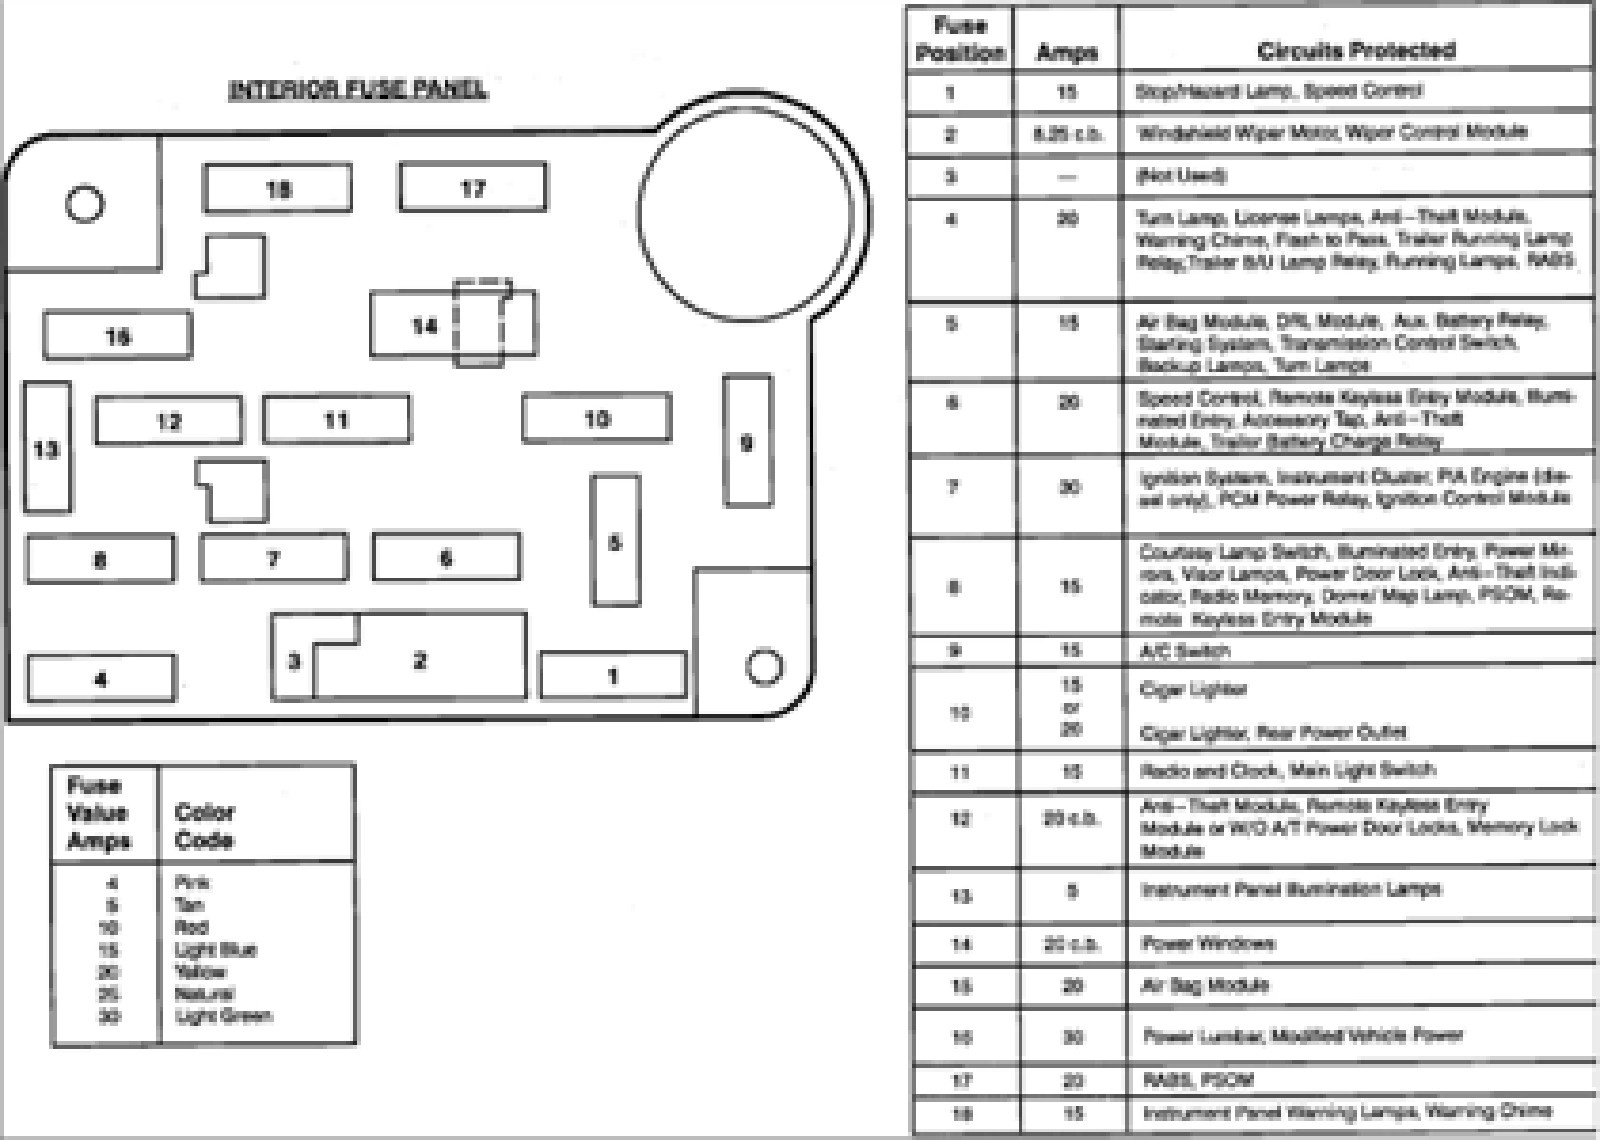 pic 8862473225641007897 1600x1200 1989 ford ranger fuse box diagram 1994 ford ranger fuse box layout 98 f150 fuse box diagram at creativeand.co